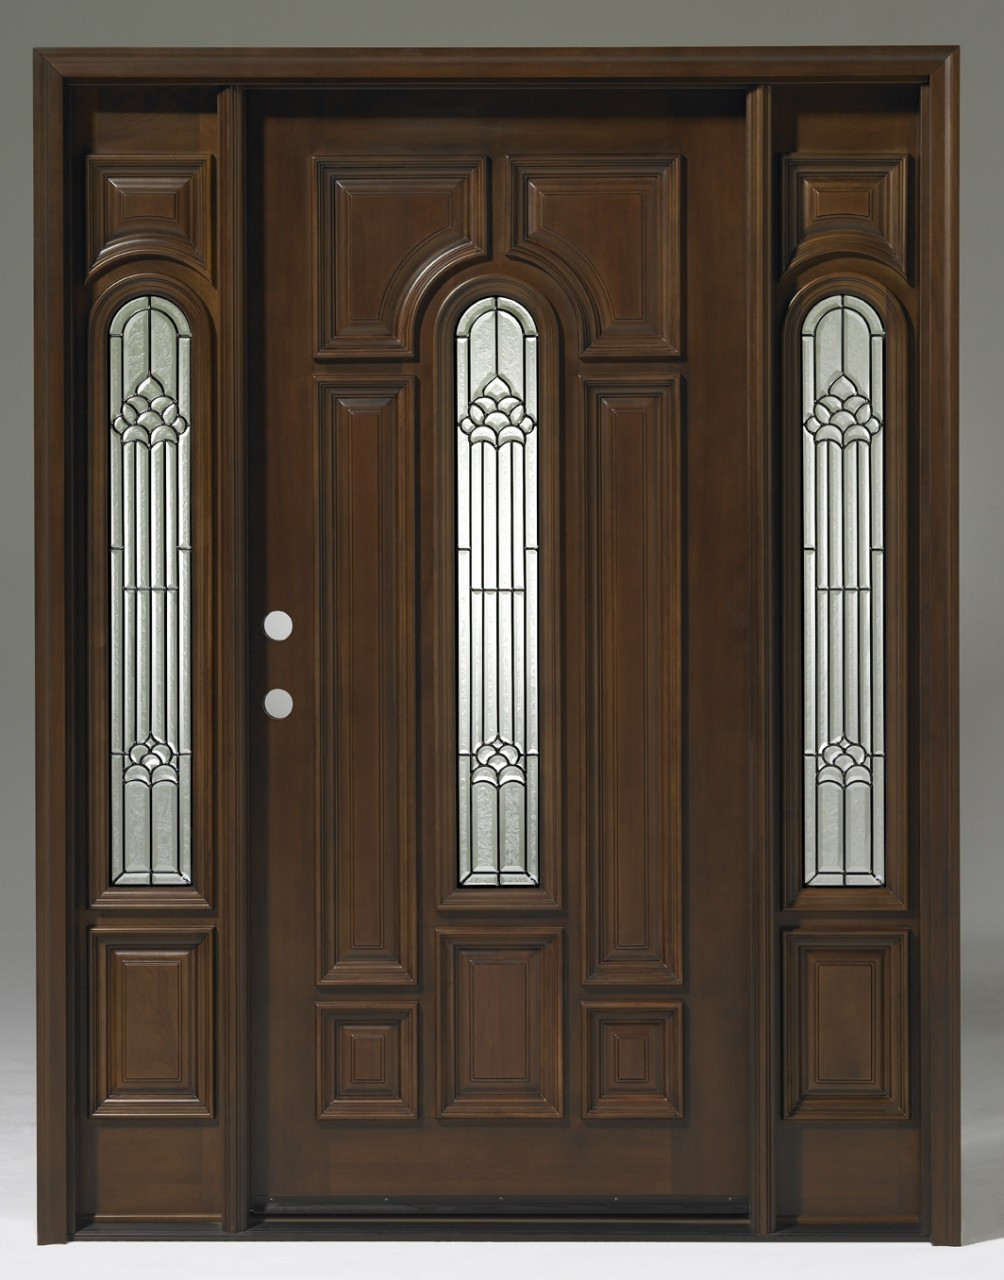 Solid Wood Entry Doors with Side Lights 1004 x 1280 · 194 kB · jpeg